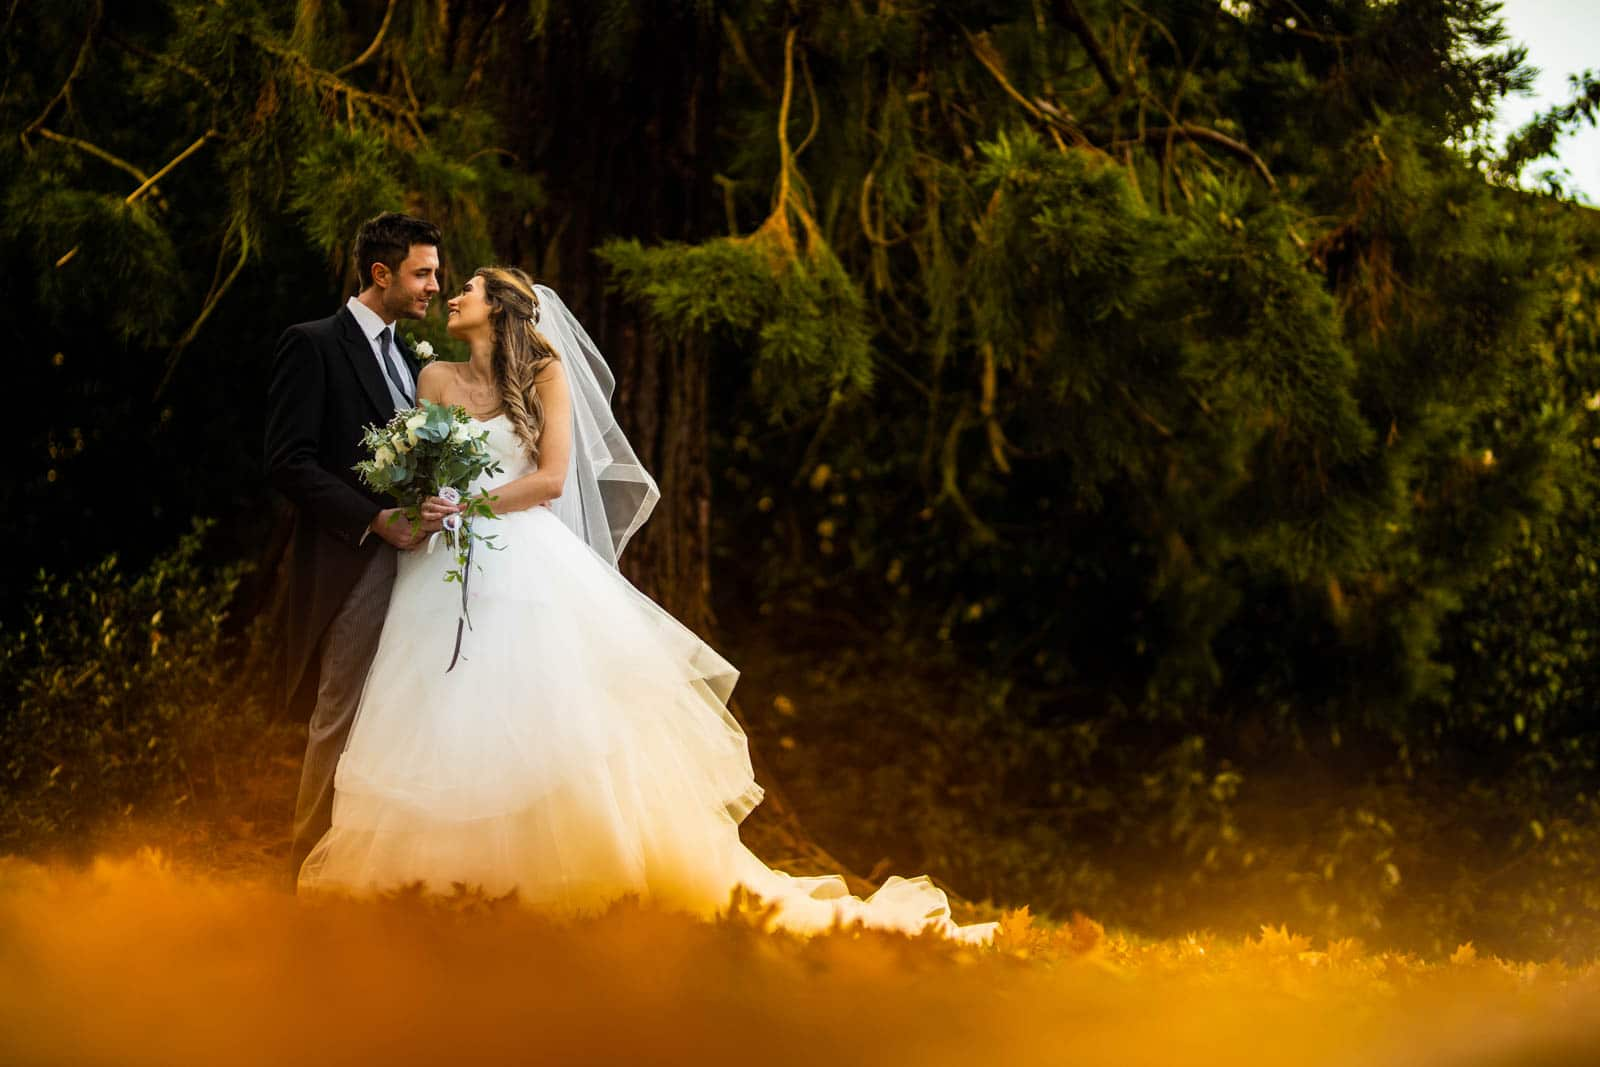 Beautiful autmnal wedding photography of the bride and groom kissing and being surrounded by orange leaves